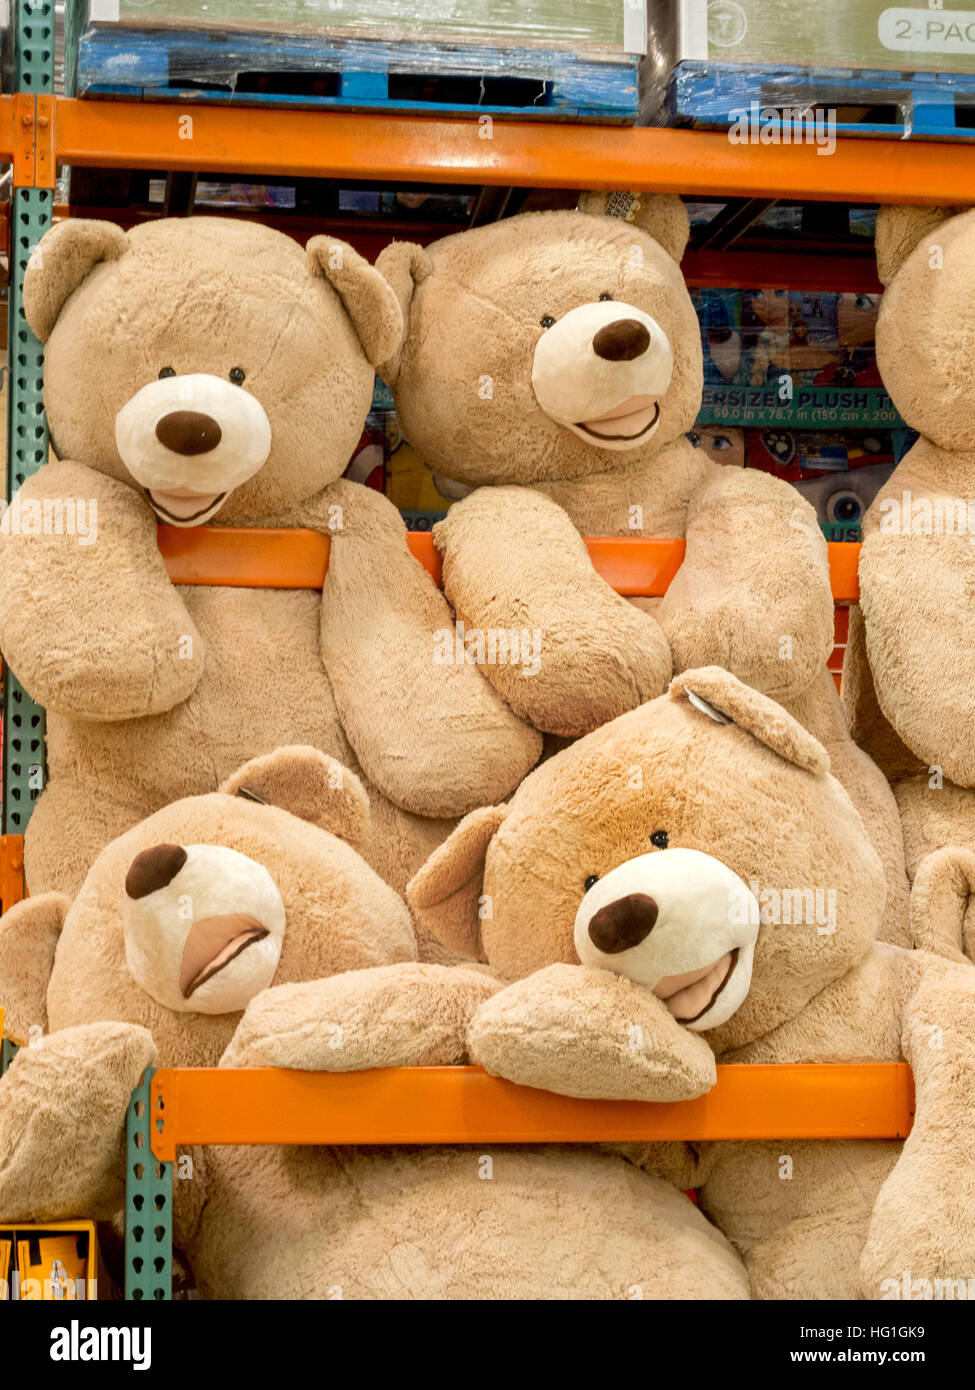 giant teddy bears are for sale at a display in a laguna niguel ca stock photo 130342109 alamy. Black Bedroom Furniture Sets. Home Design Ideas